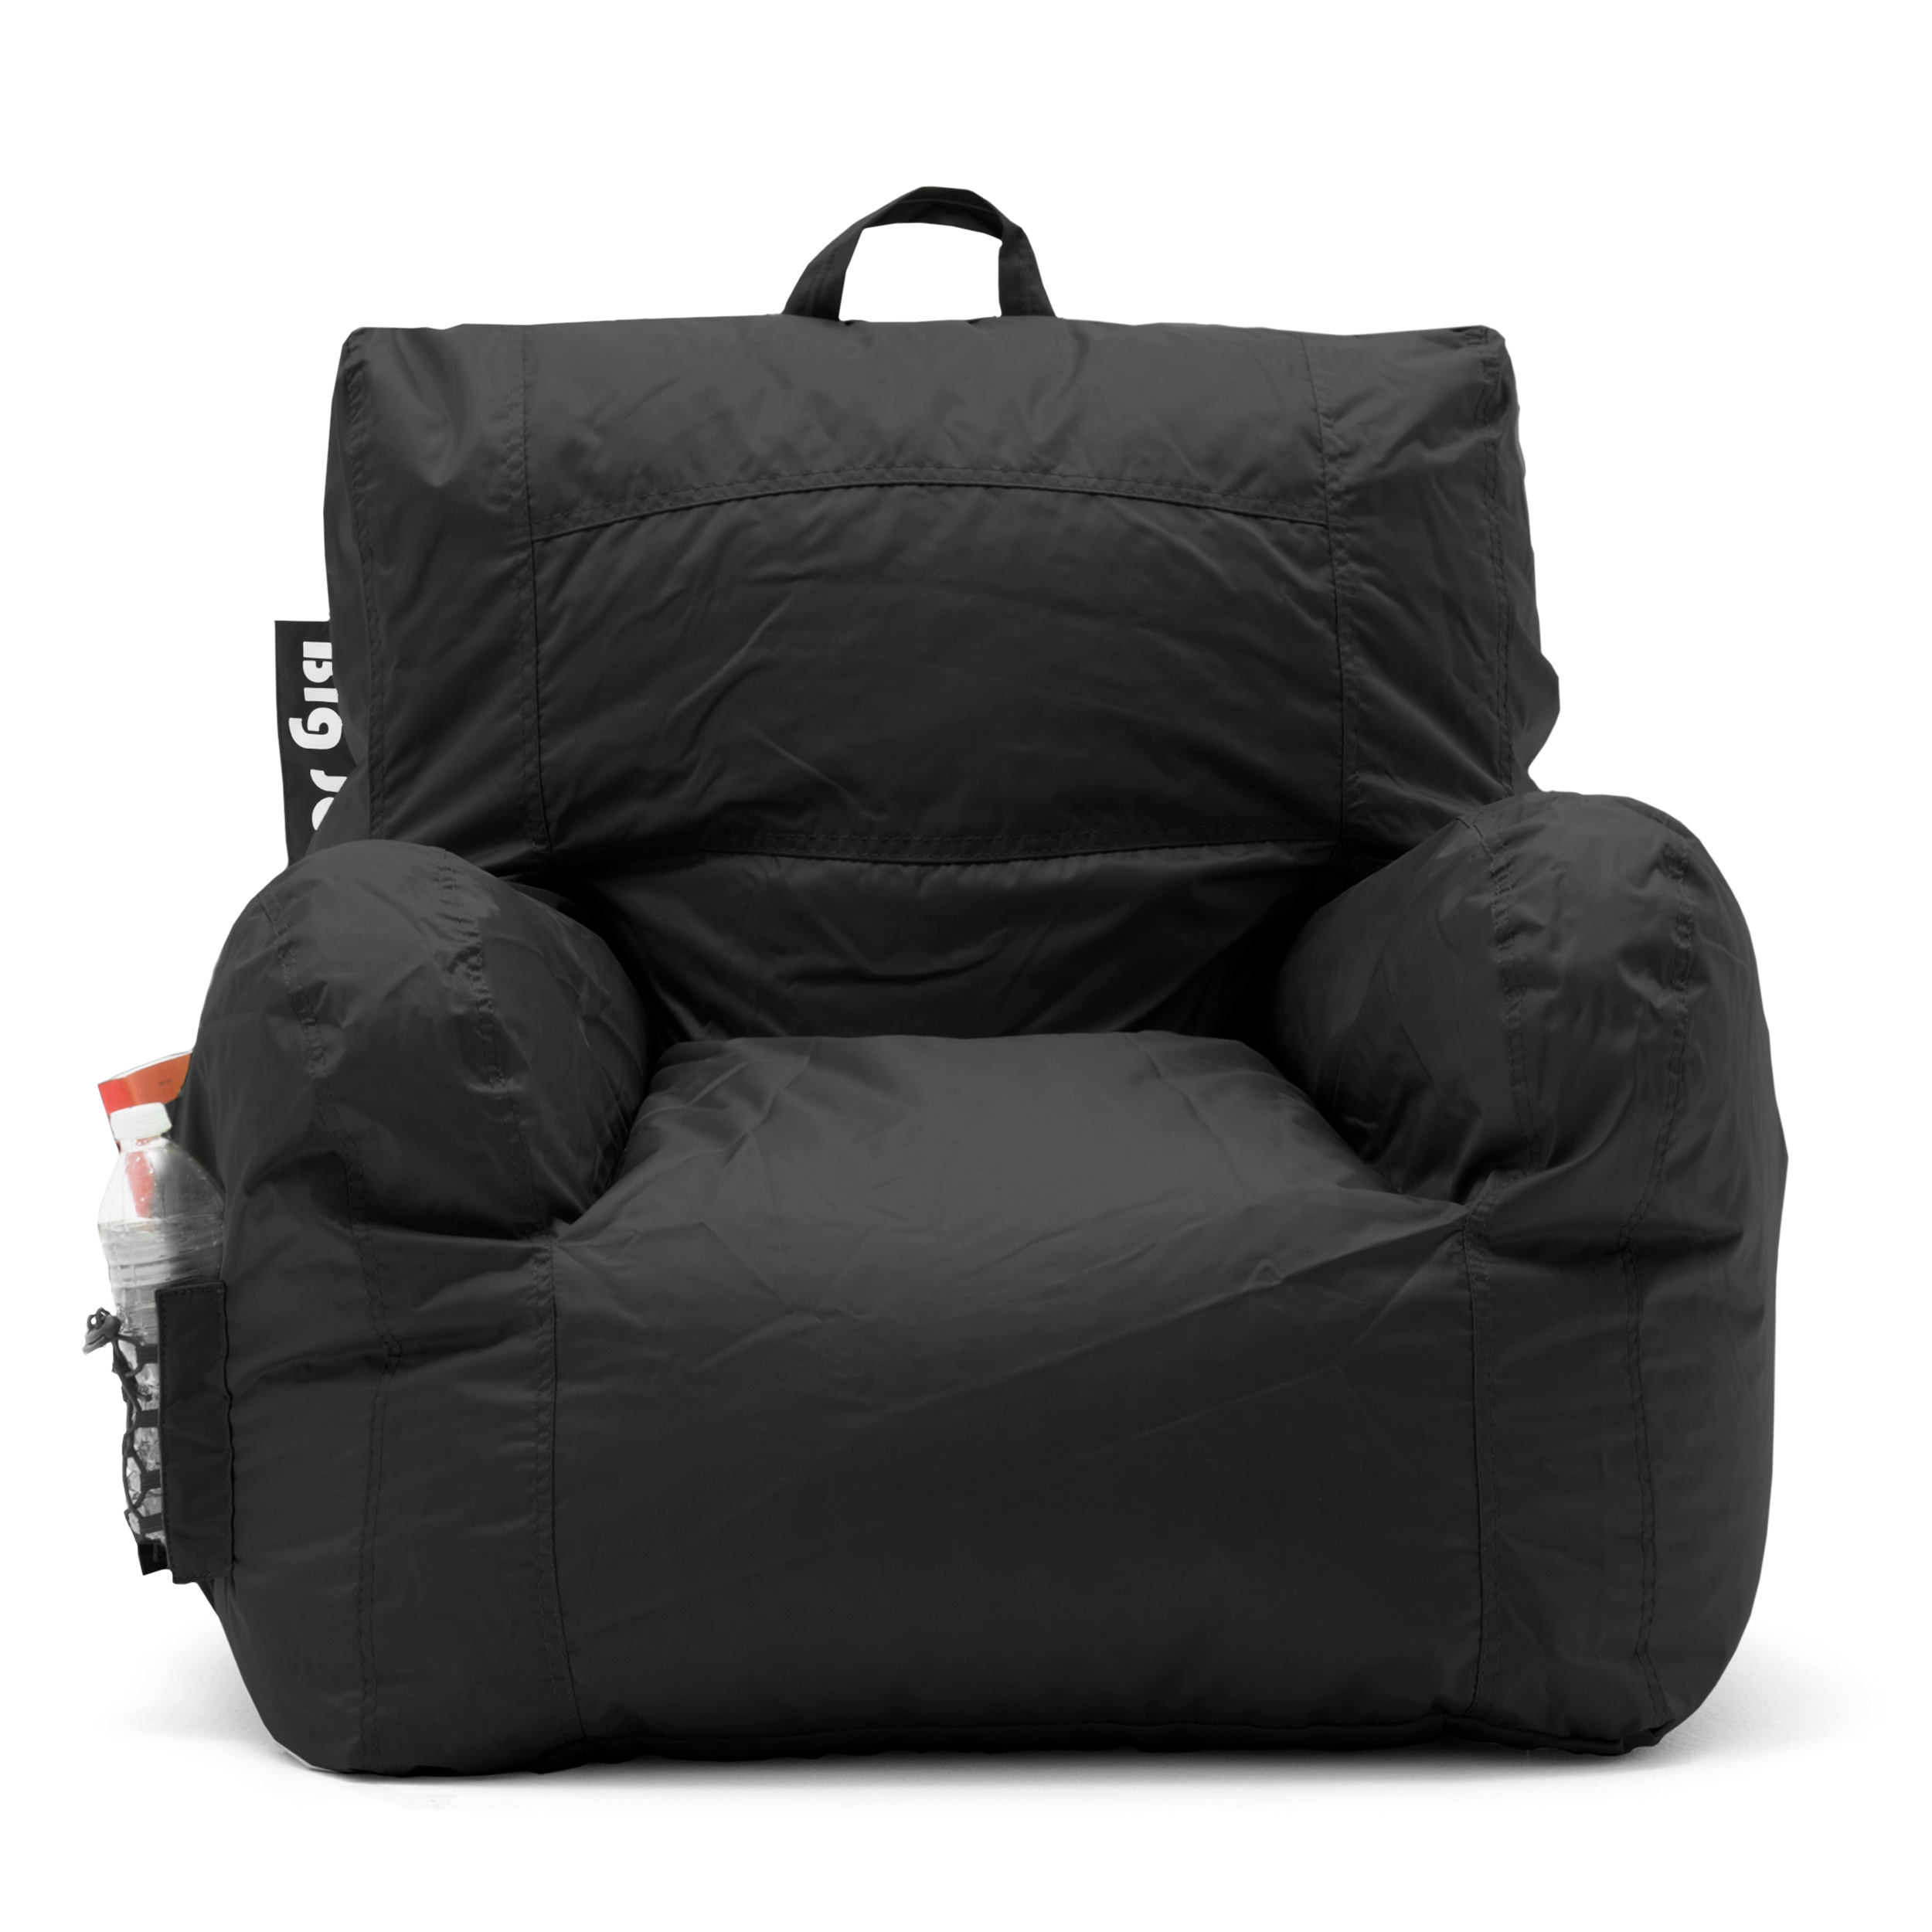 Big Joe Bean Bag Chair Black College Dorm Room Kids Video